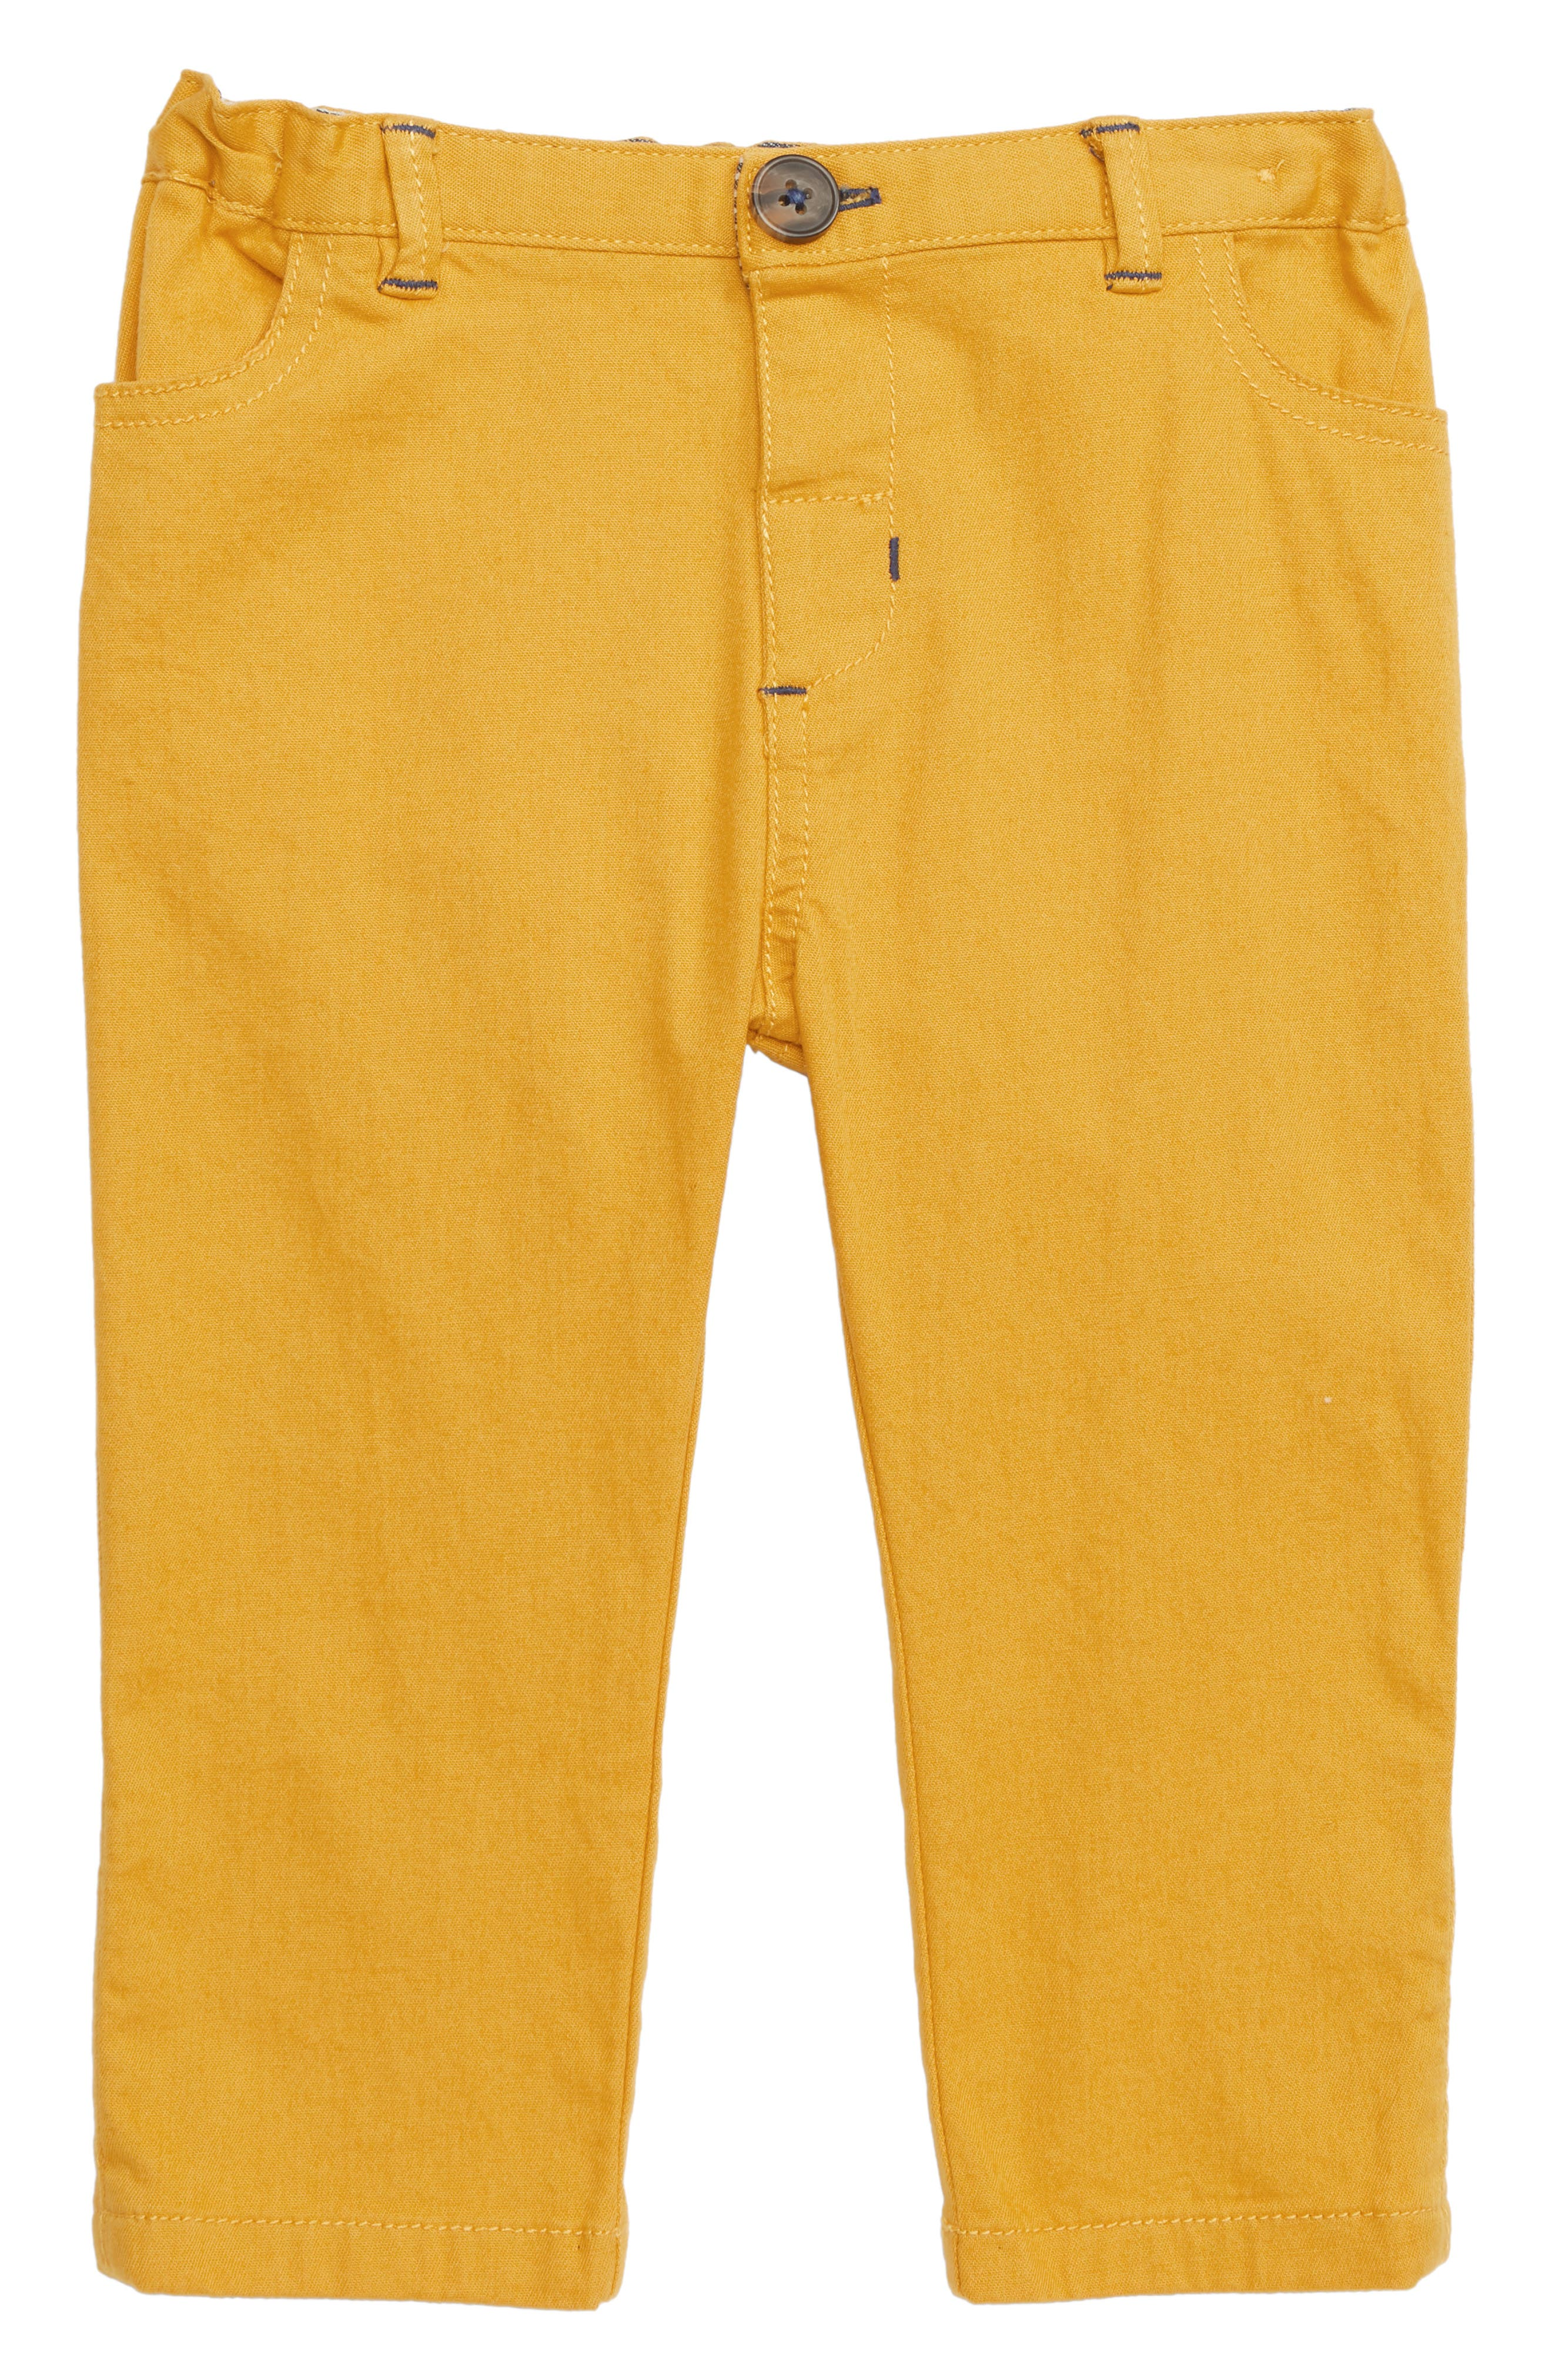 MINI BODEN Colorful Chino Pants, Main, color, YEL HONEYCOMB YELLOW